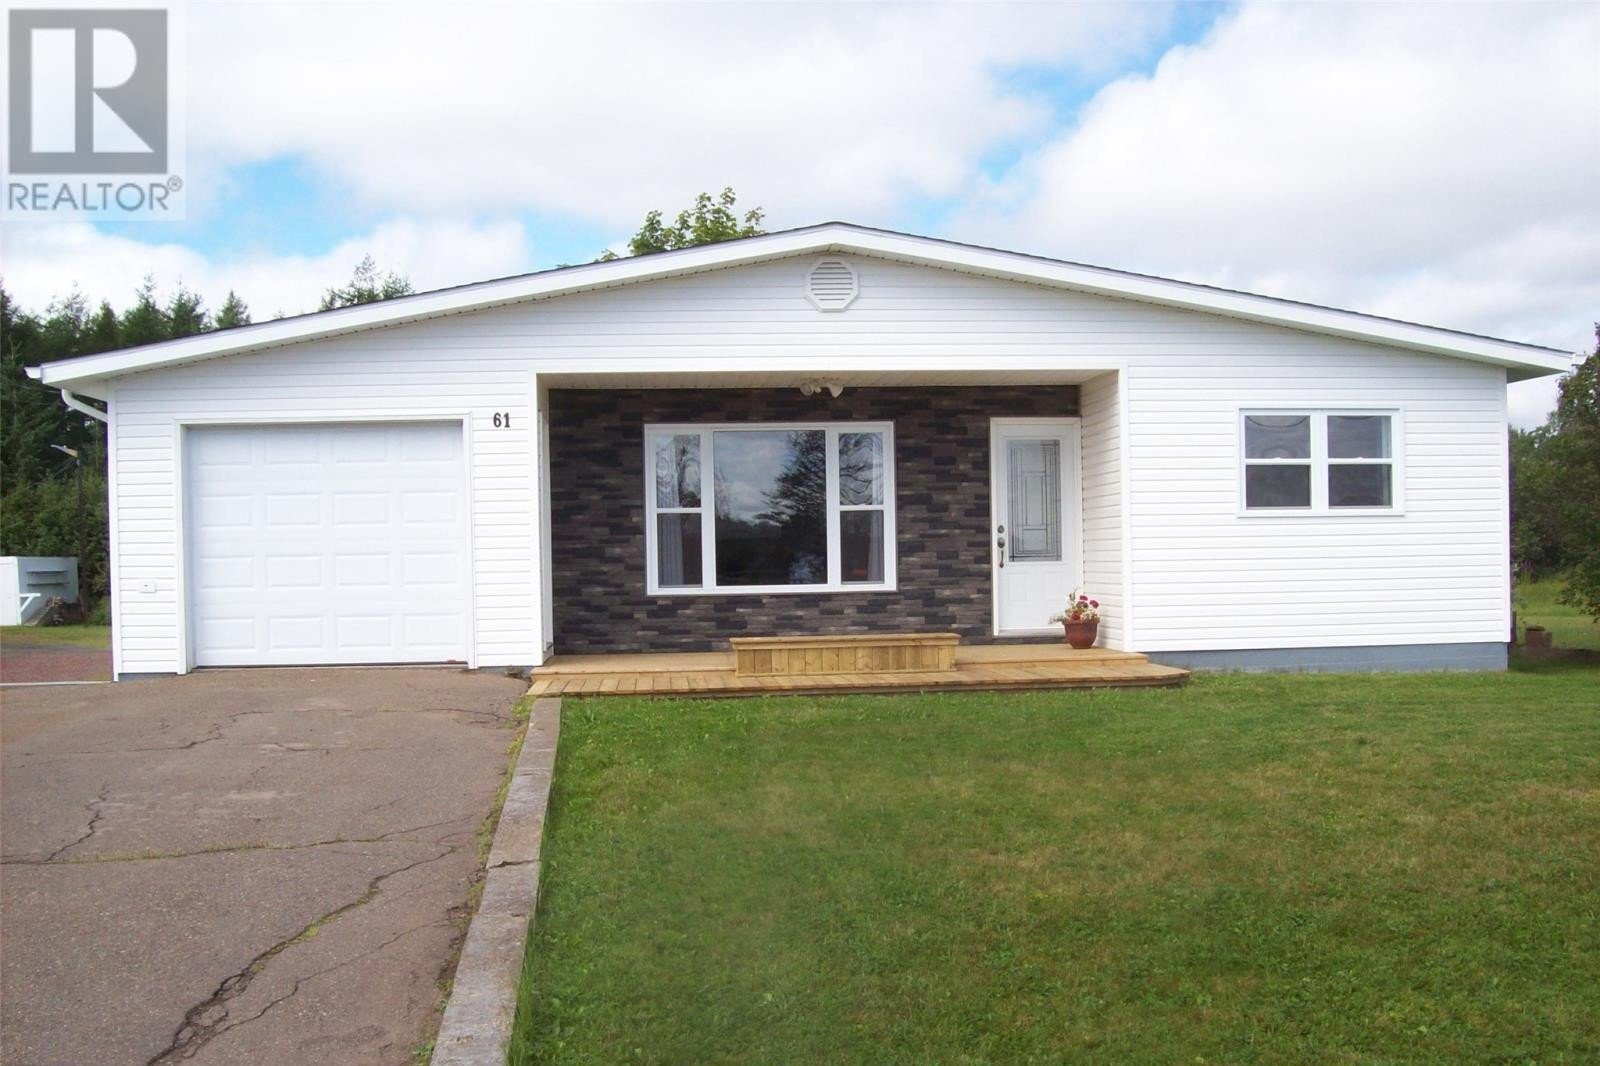 House for sale at 61 Water St Botwood Newfoundland - MLS: 1223471